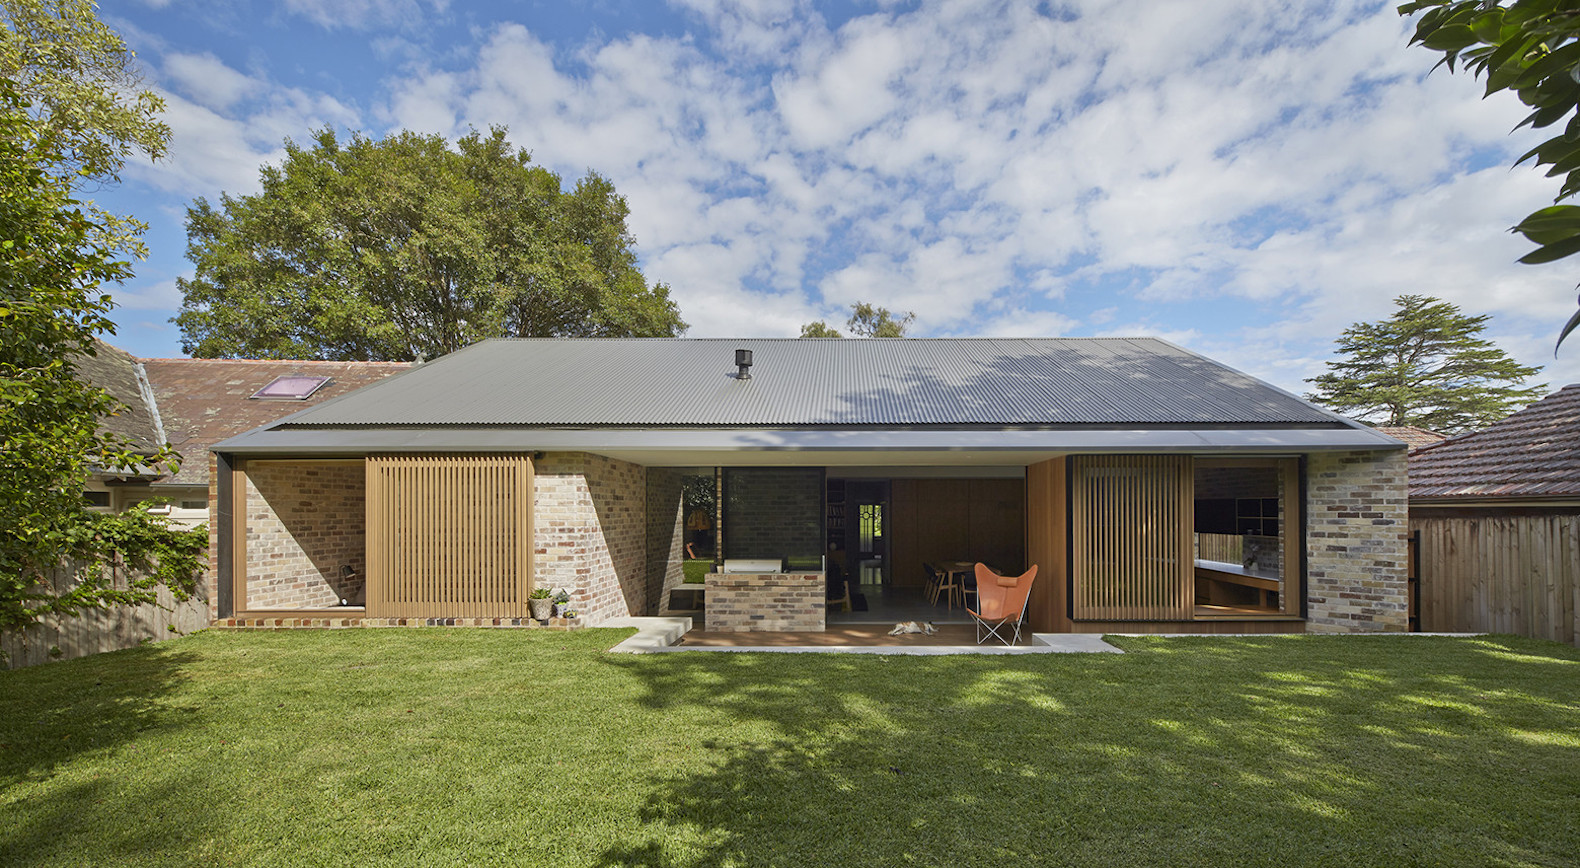 Old bungalow transformed into a light-filled dwelling with recycled brick